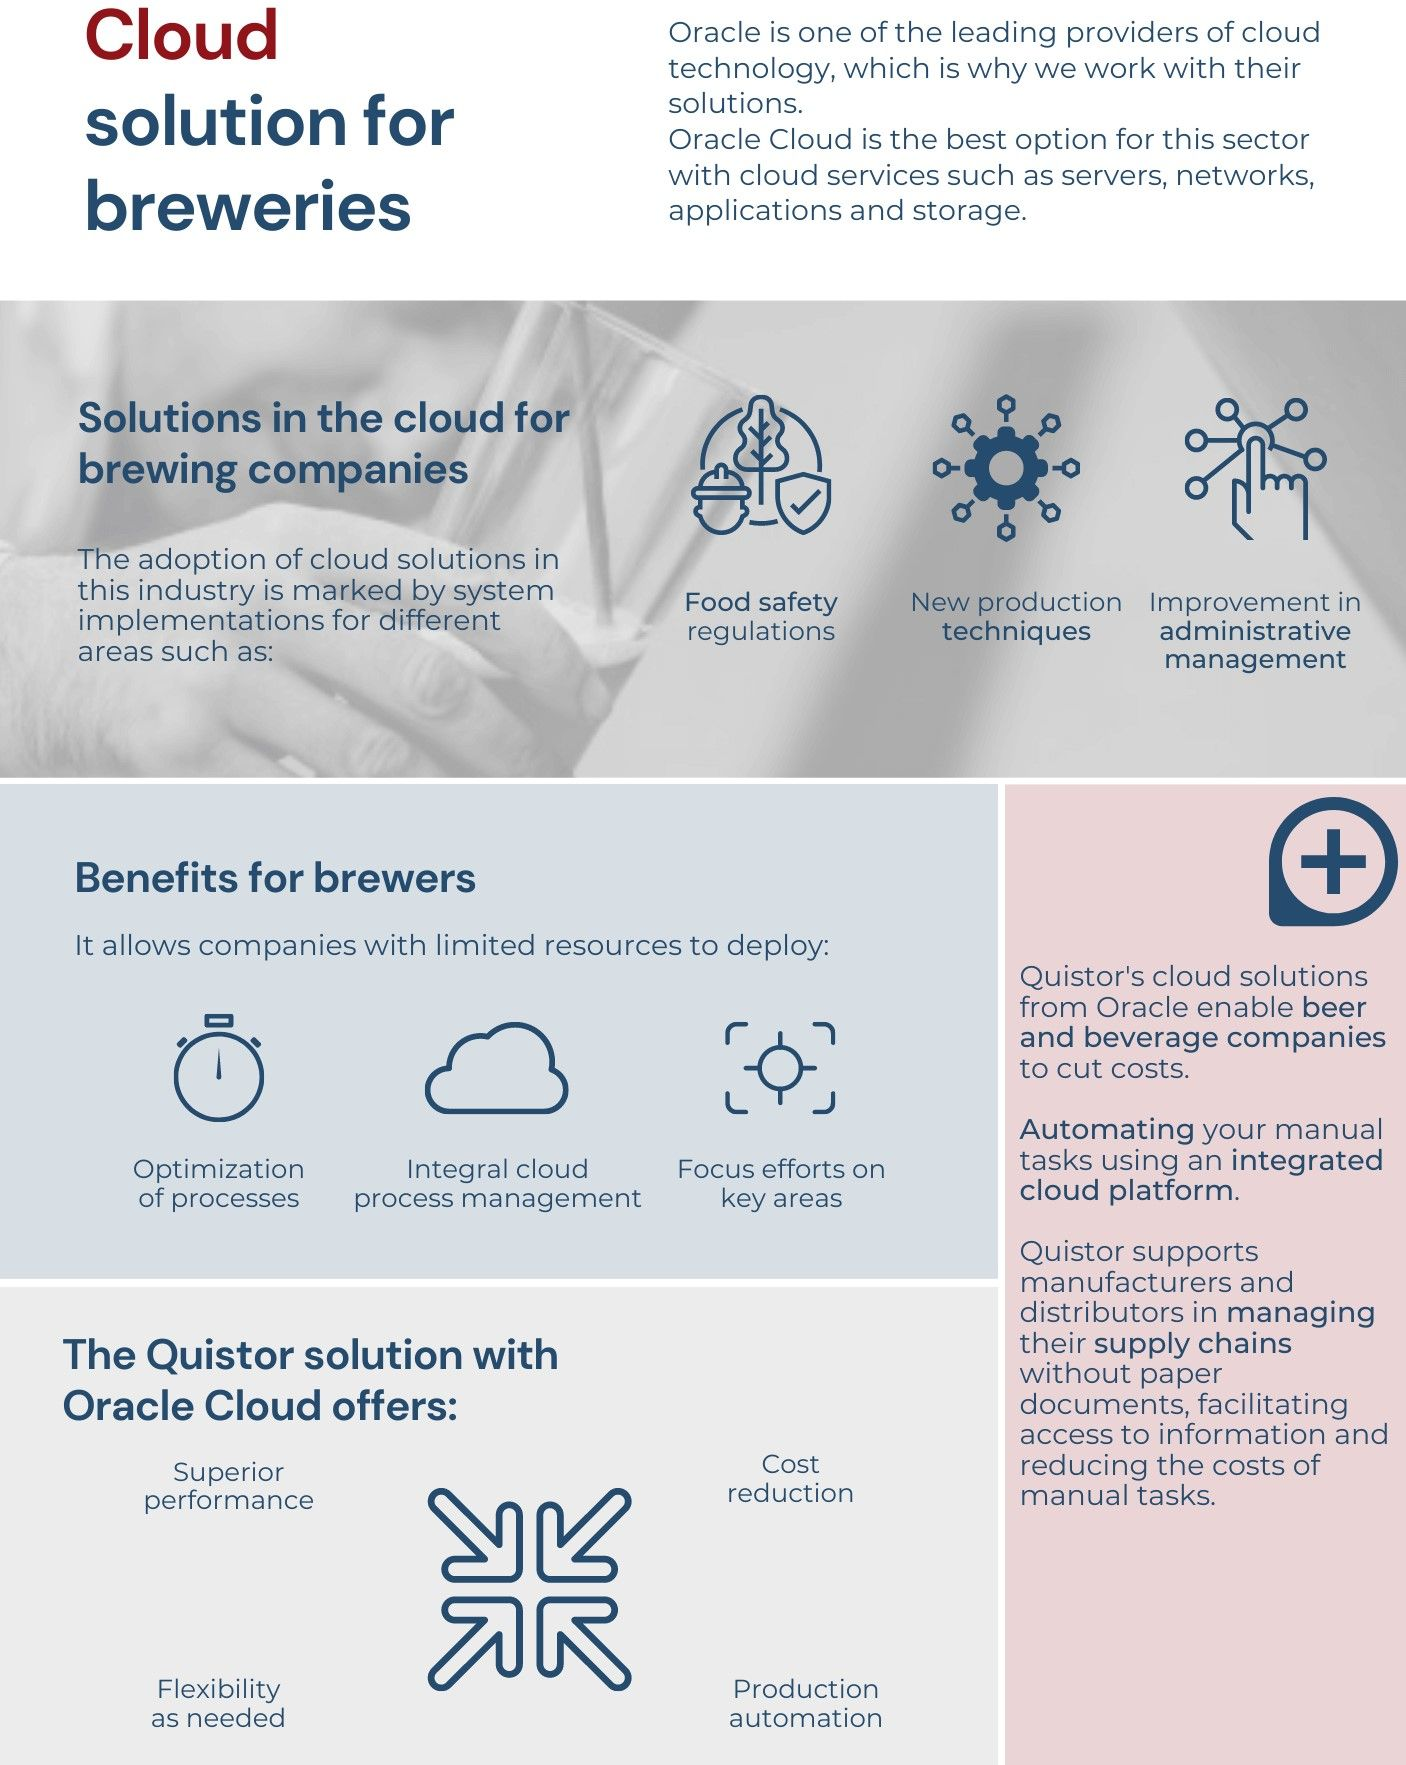 Quistor solutions for breweries 2